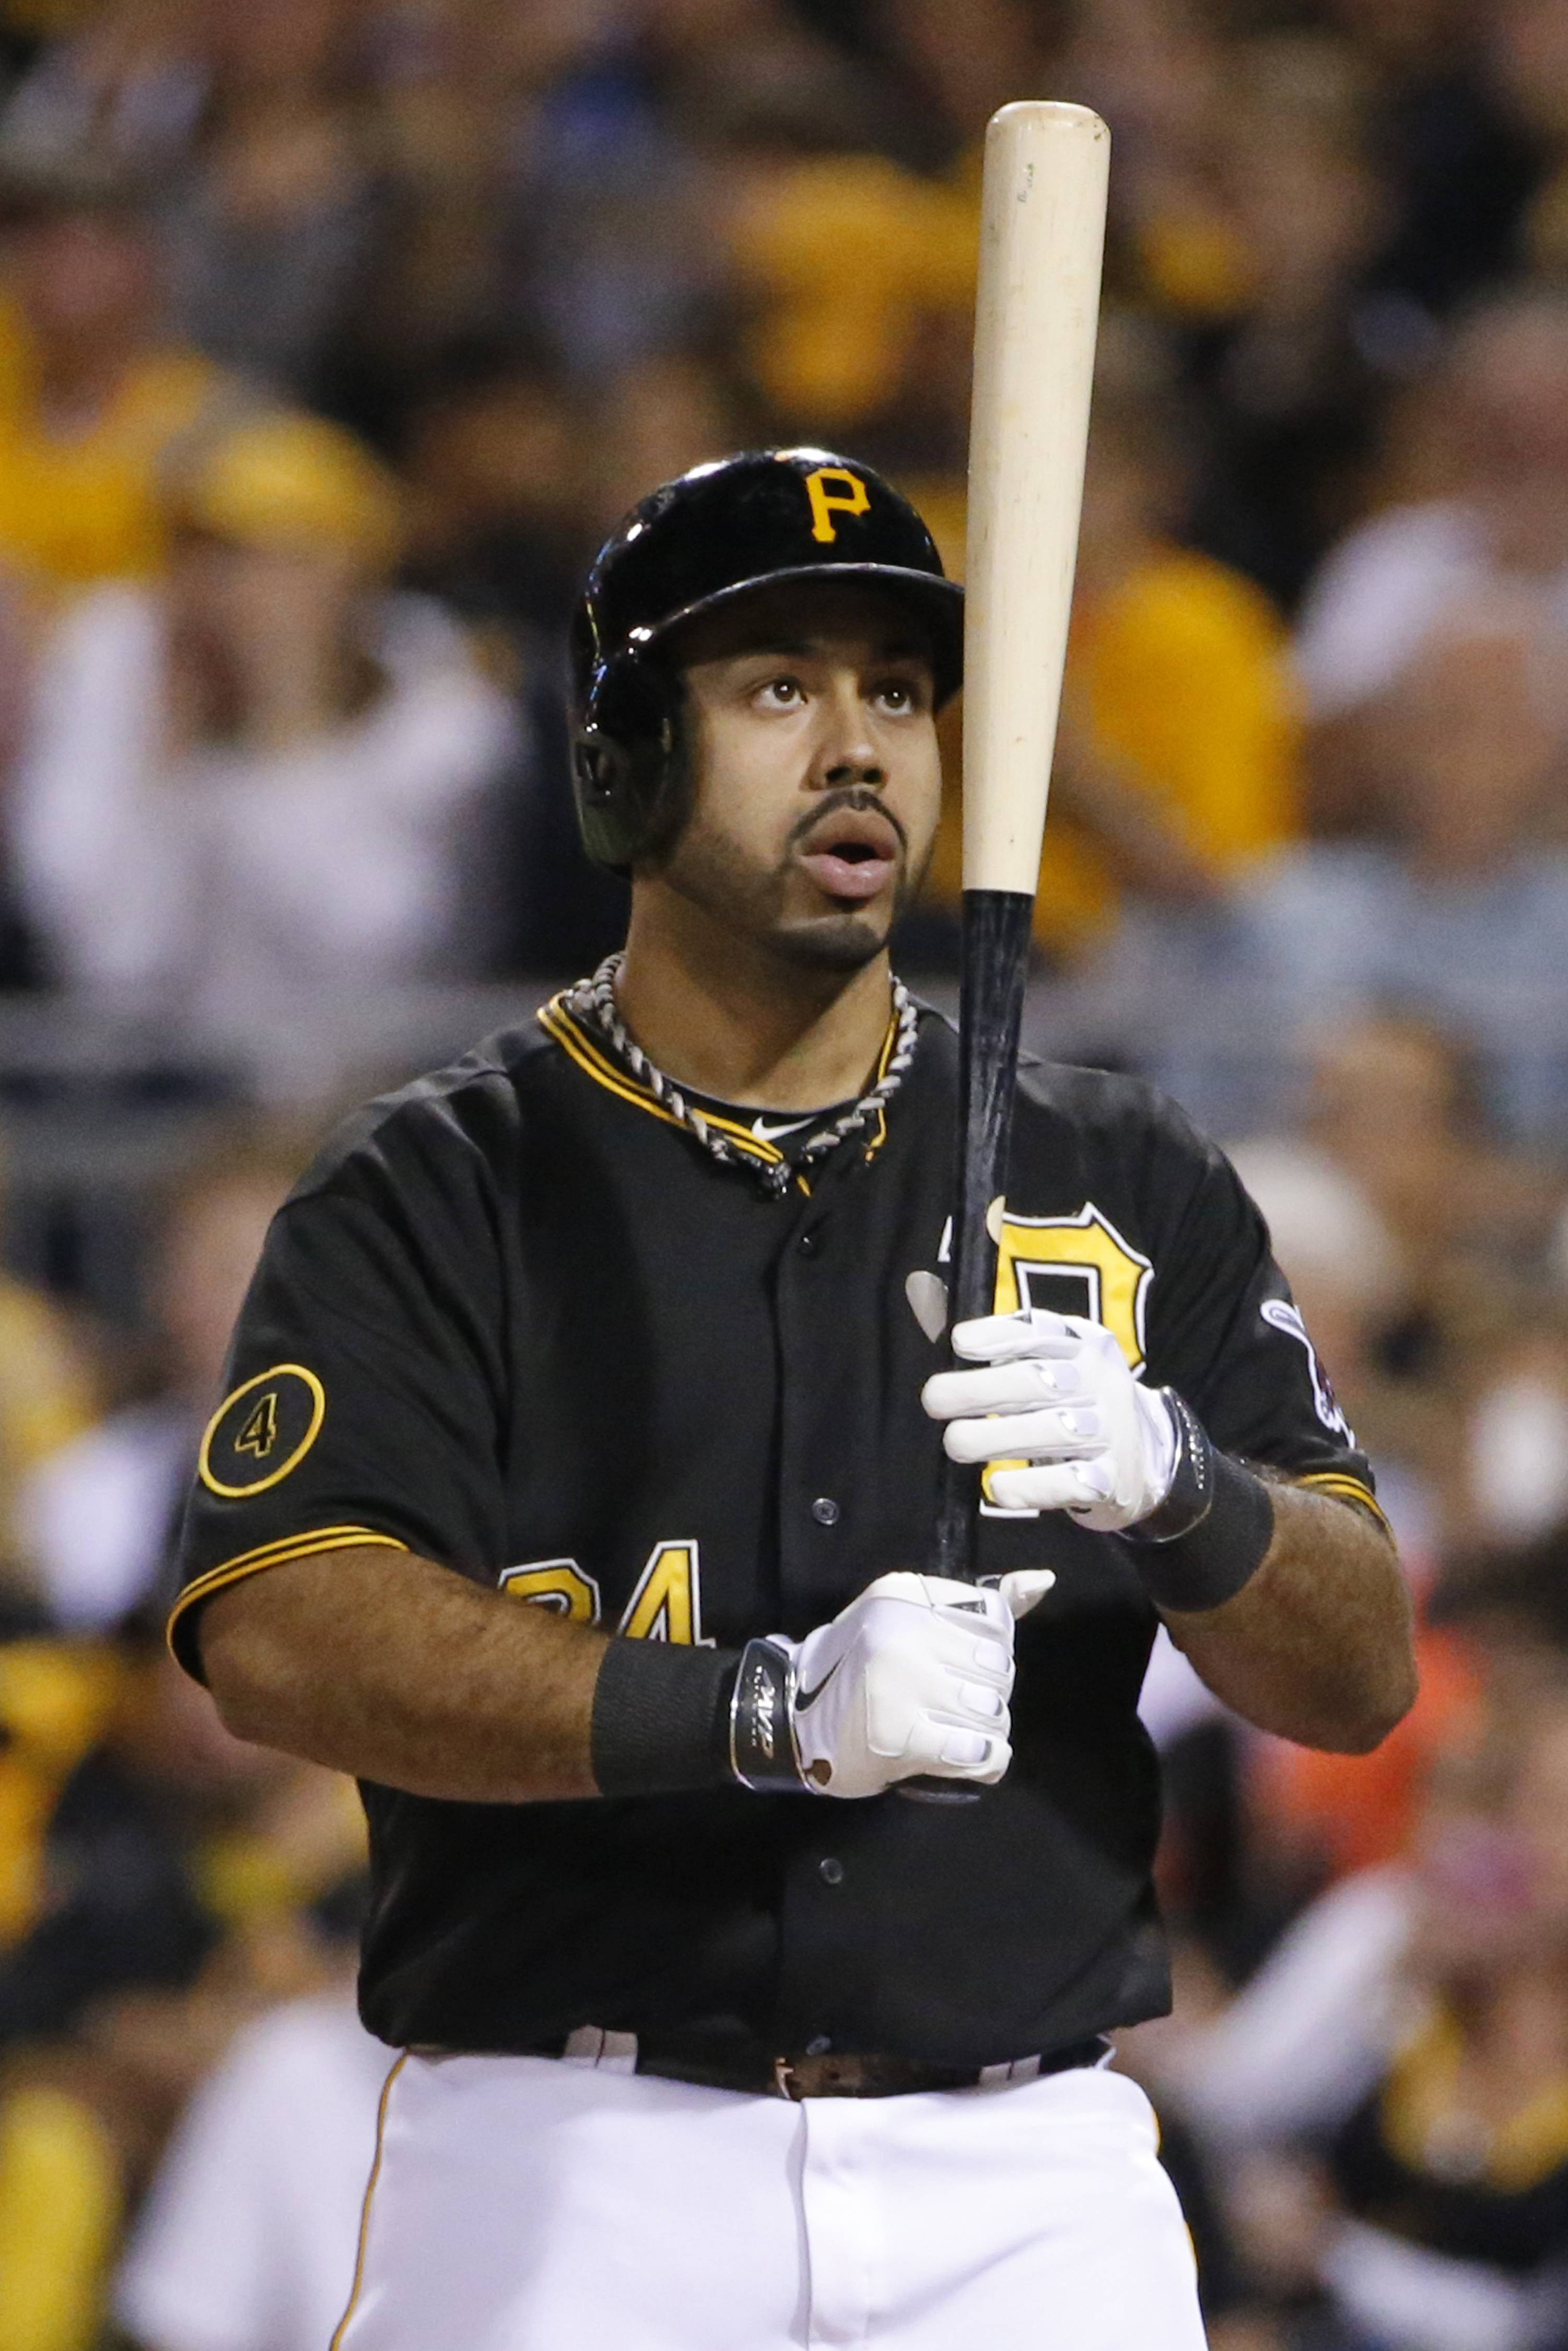 Could it be the White Sox are targeting Pirates power-hitting third baseman Pedro Alvarez to replace Adam Dunn in the lineup next season?